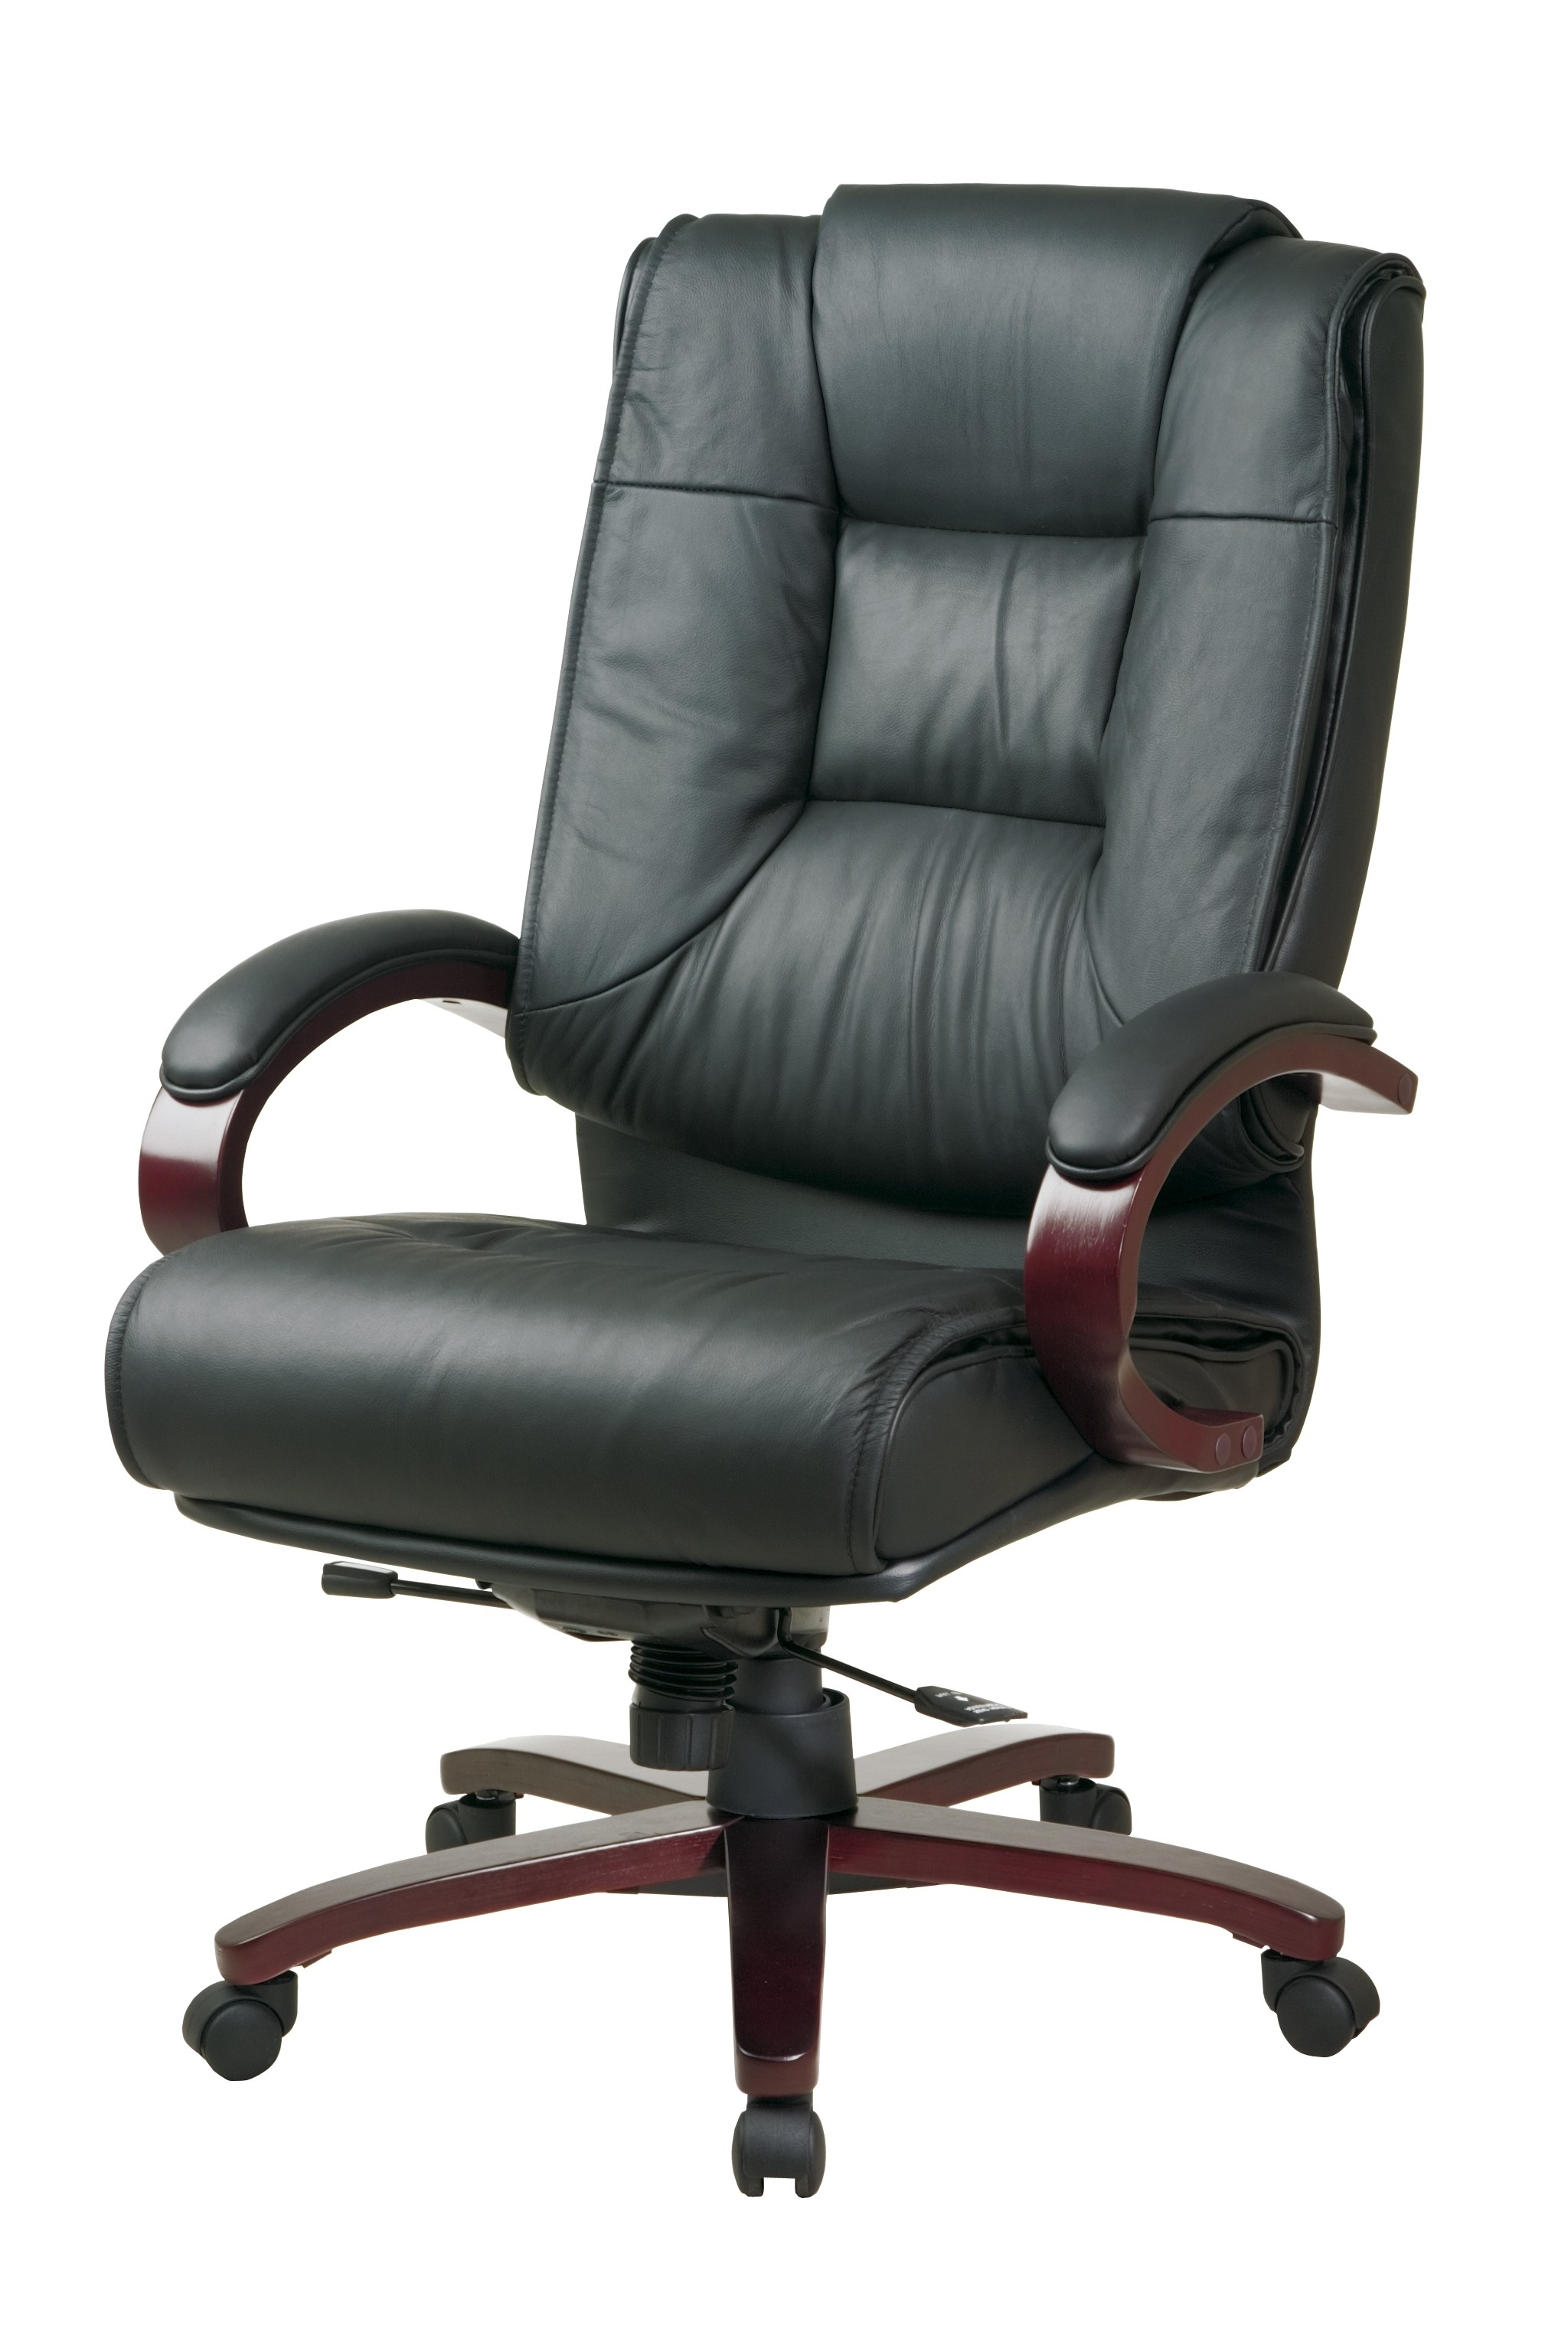 Leather Wood Executive Office Chairs Regarding Best And Newest Office: Office Chairs Ideas With Black Leather Executive Chair (View 8 of 20)